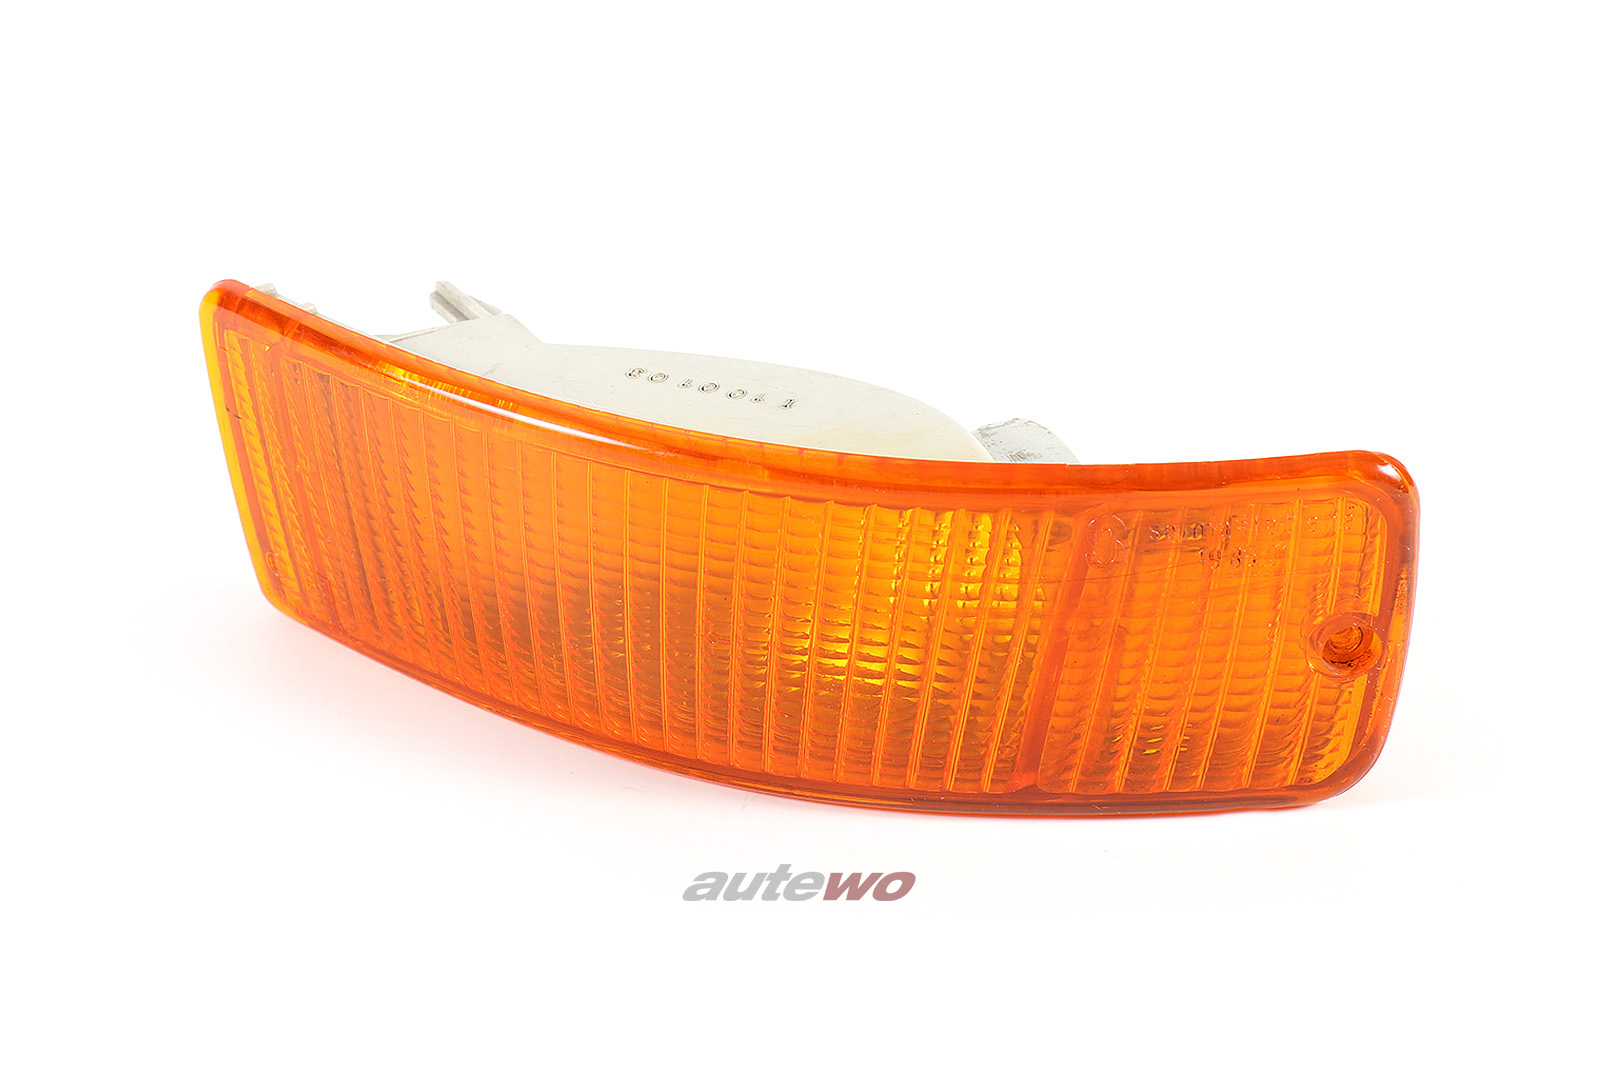 8A0953049A Audi 80 B4/Coupe/Cabrio Typ 89/S2 Blinker Vorne Links orange